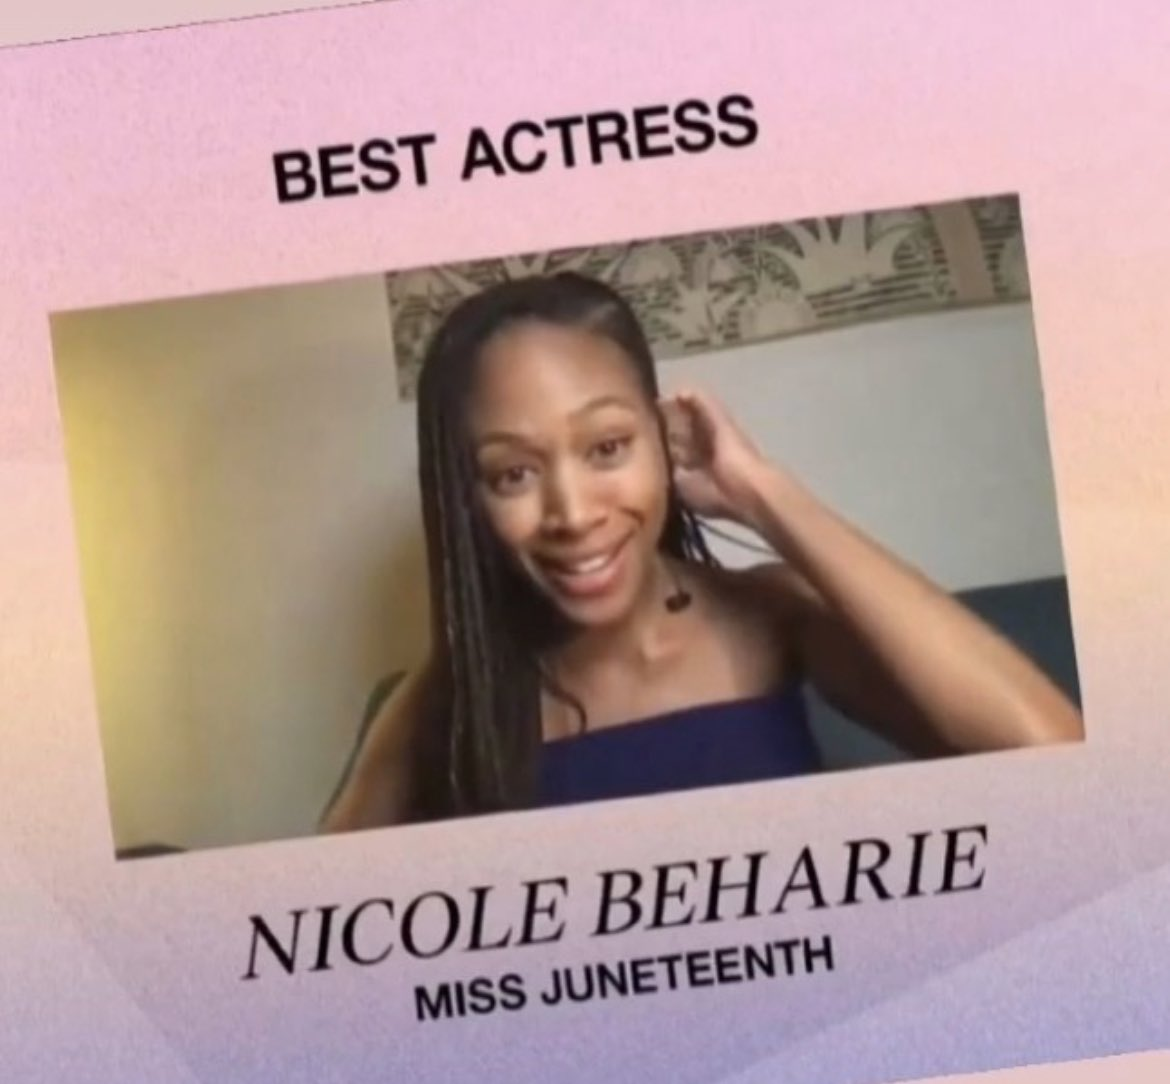 She's soo good! Ty @cgpeoples for bringing us this #gem! Congrats  @NikkiBeharie 🎉🎉🎉 #MissJuneteenth